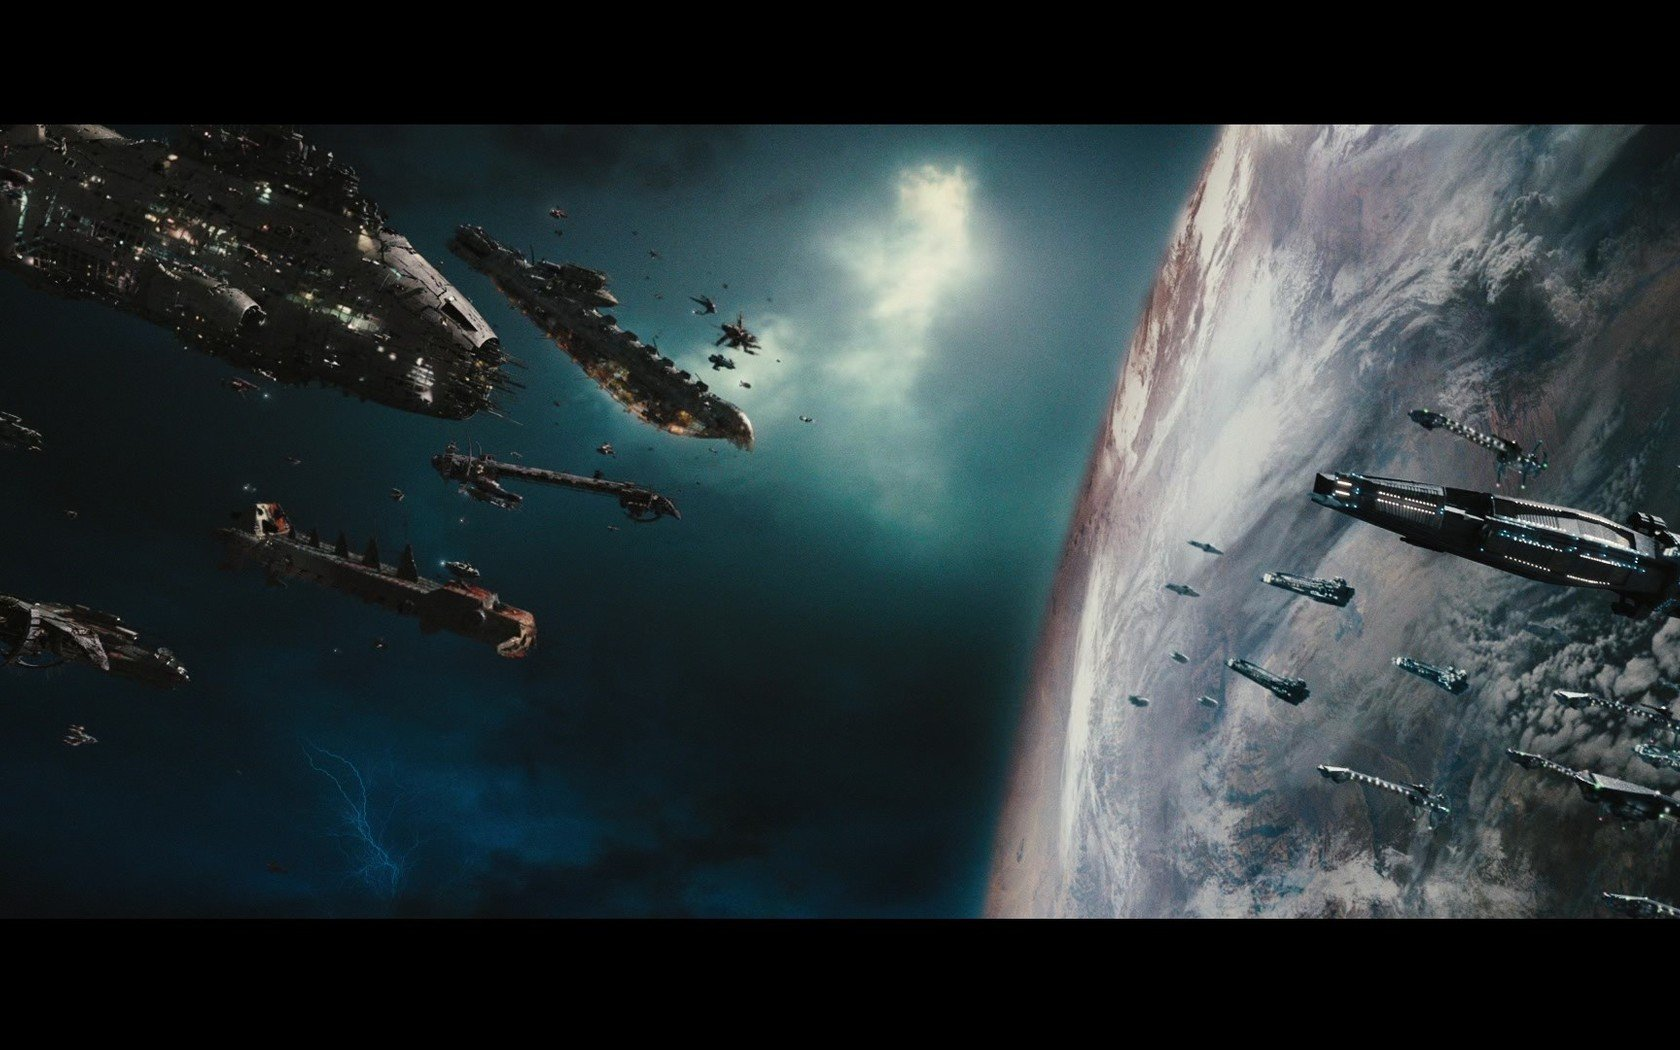 Download Serenity space battle wallpaper 1680x1050